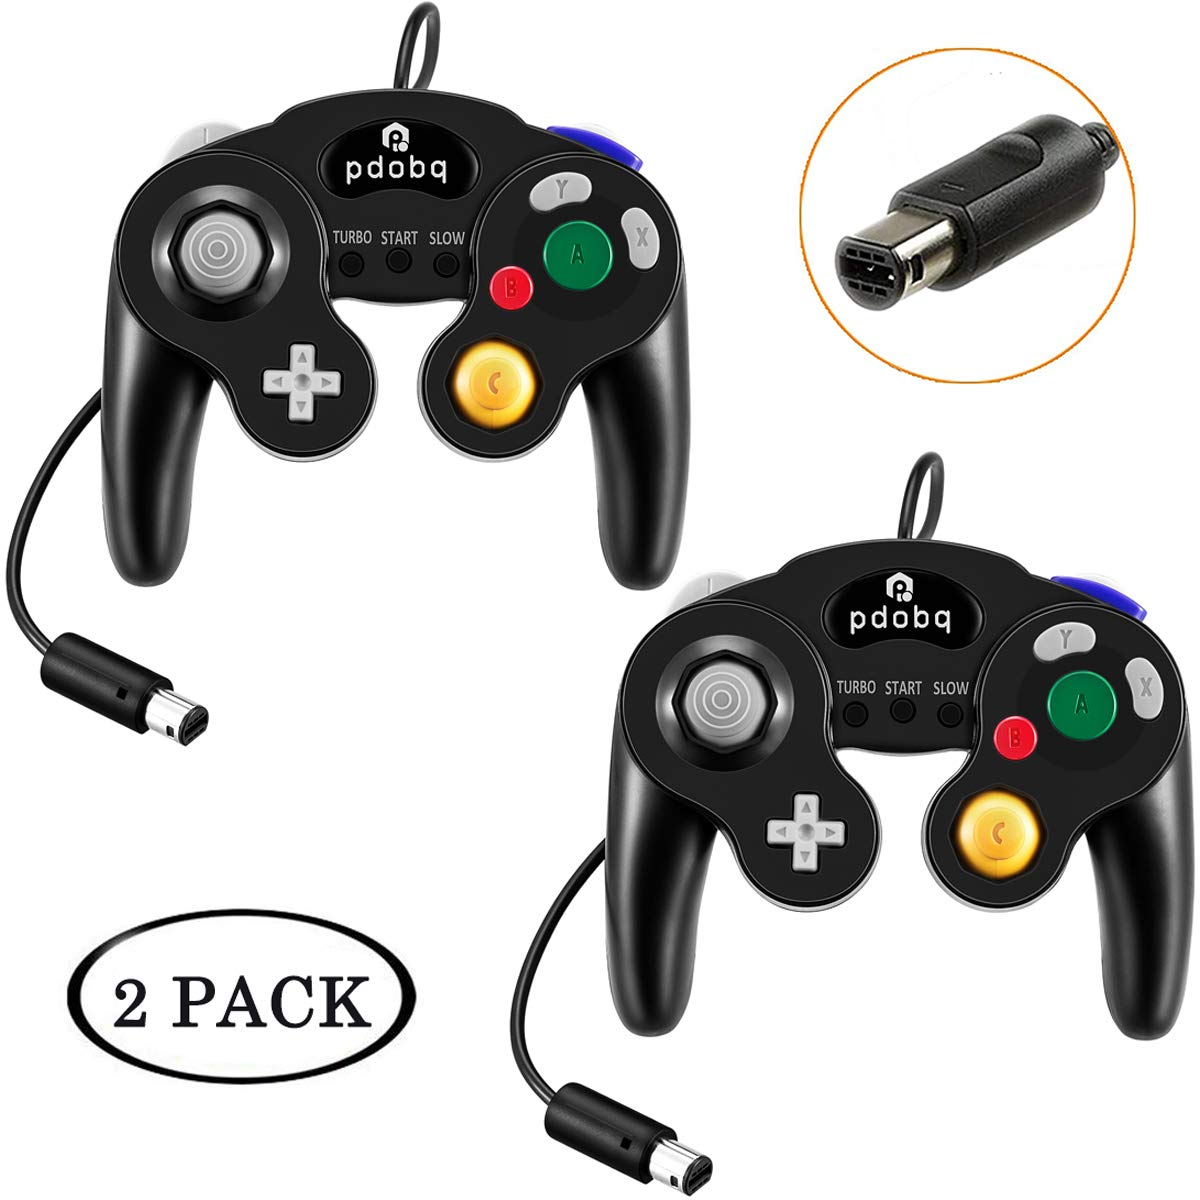 Gamecube Controller, 2 unidades de cable clásico compatible con Nintendo Gamecube Controller para Wii U, PC, Switch, WII, Super Smash Bros Ultimate Nintendo Switch Controller (negro + blanco): Amazon.es: Electrónica